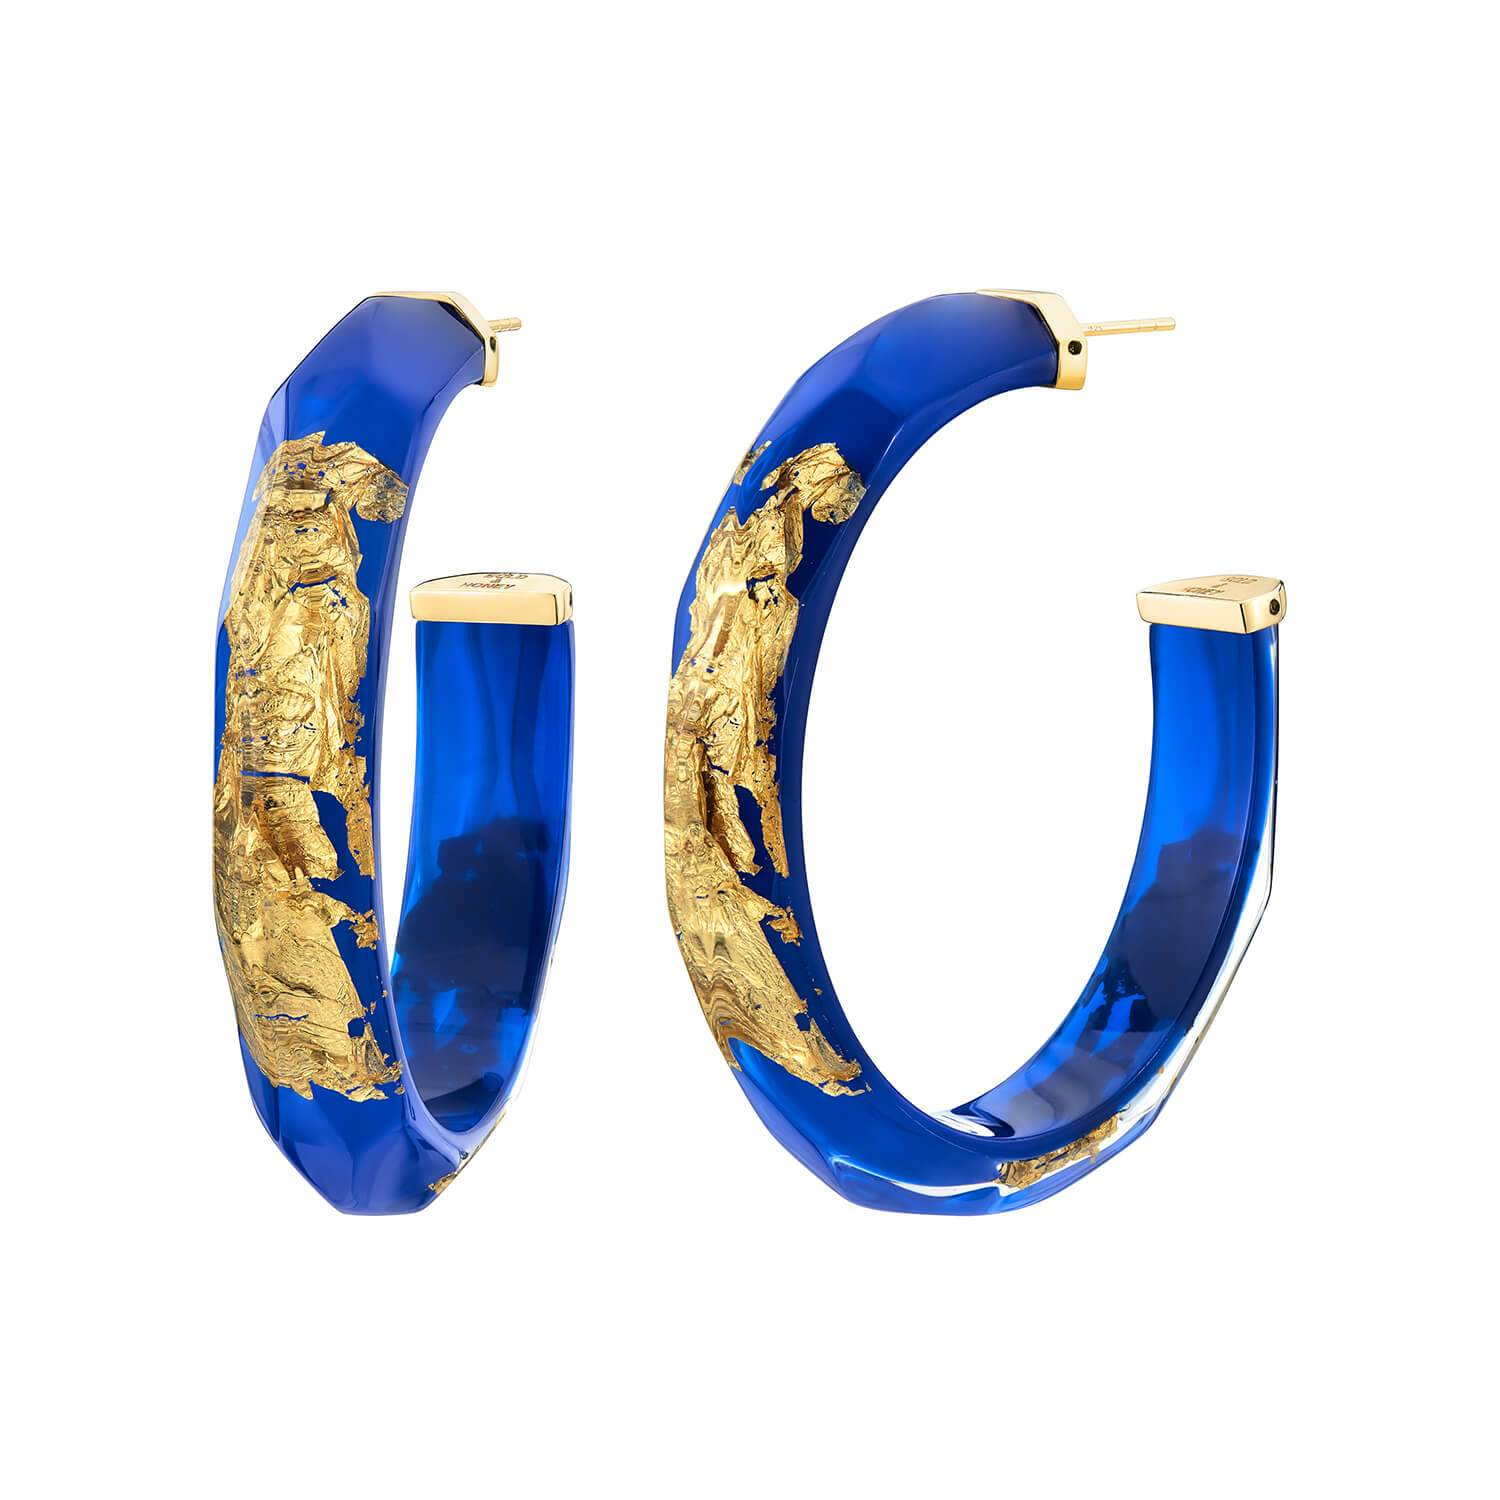 24K Gold Leaf Faceted Large Lucite Hoops